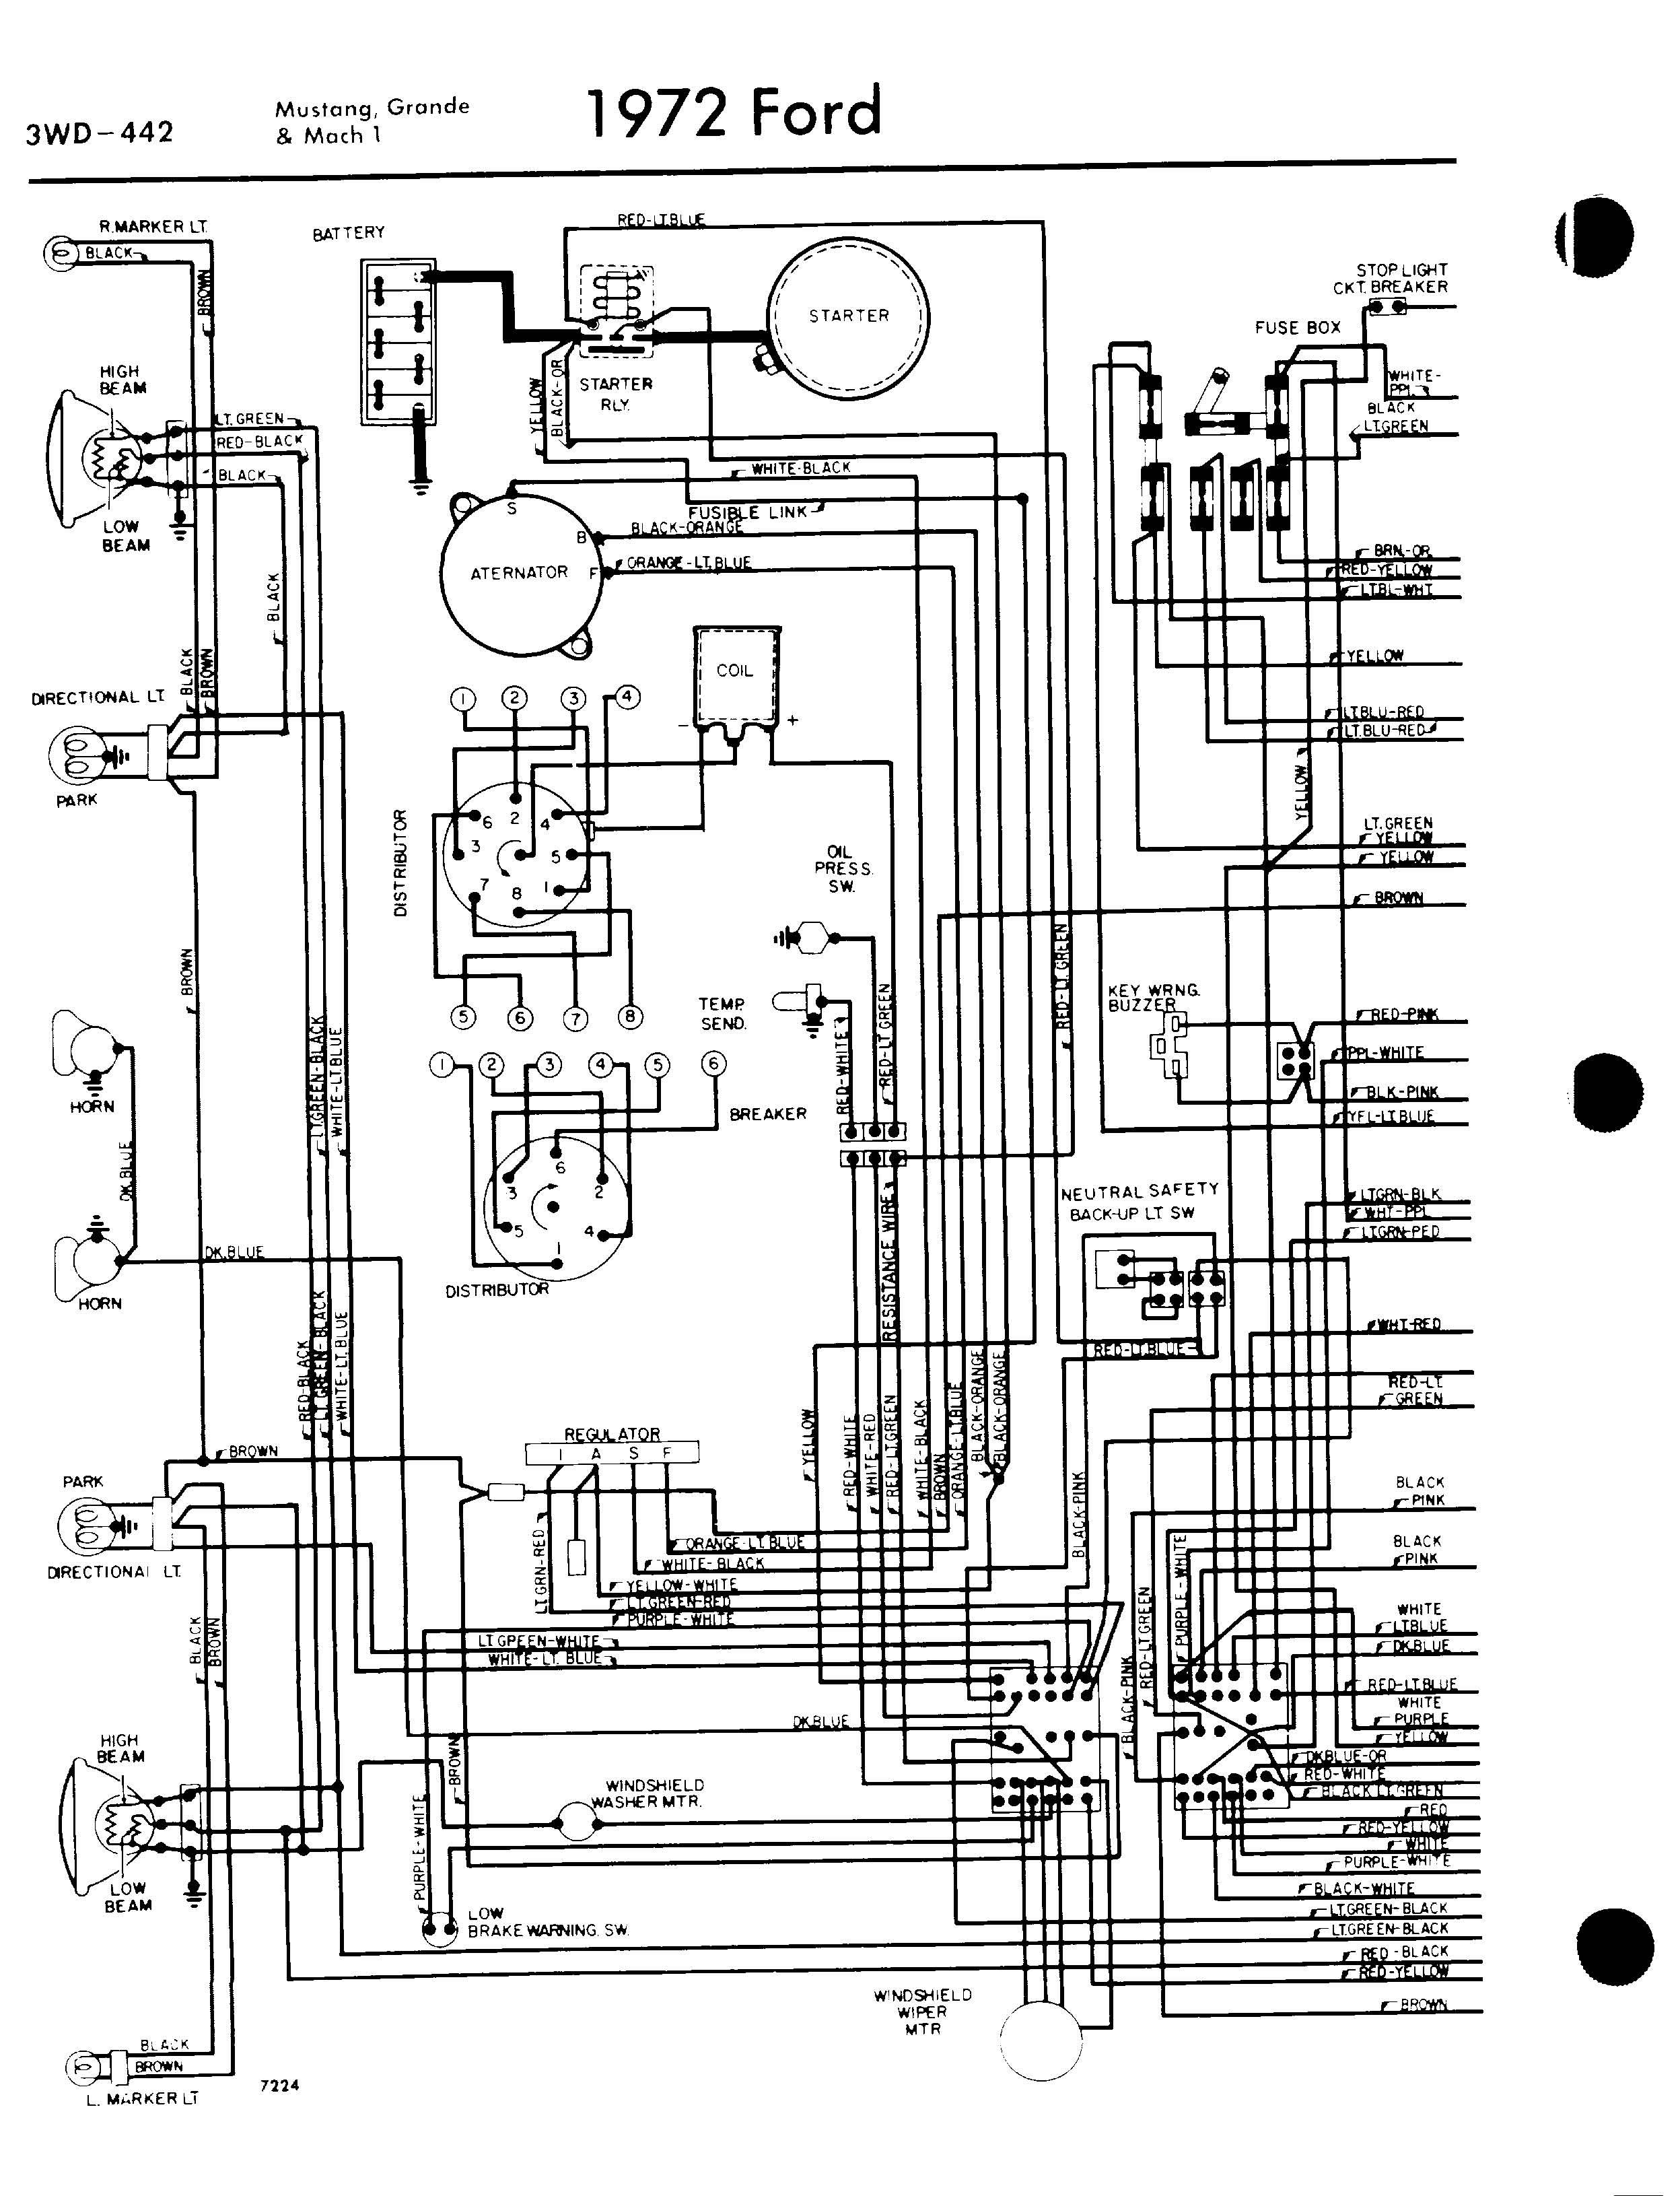 71af7a58e095e6a7716b32f1b23e8bd2 72 mach1 alternator wire harness diagram yahoo search results 71 mustang wiring diagram at bayanpartner.co